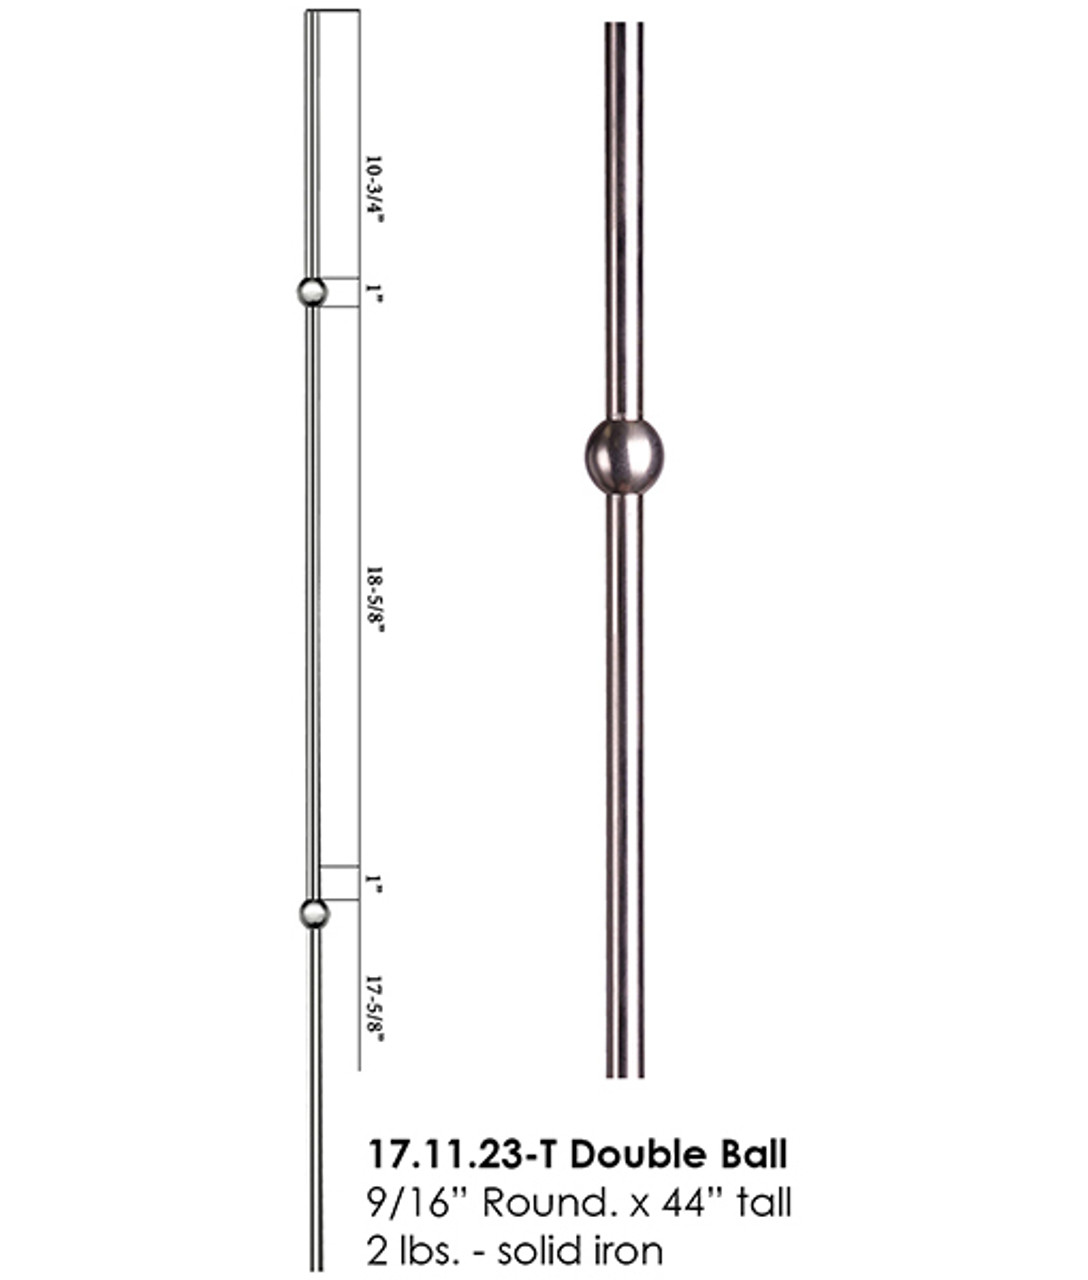 HF17.11.23-T Round Double Knuckle Stainless Steel Baluster